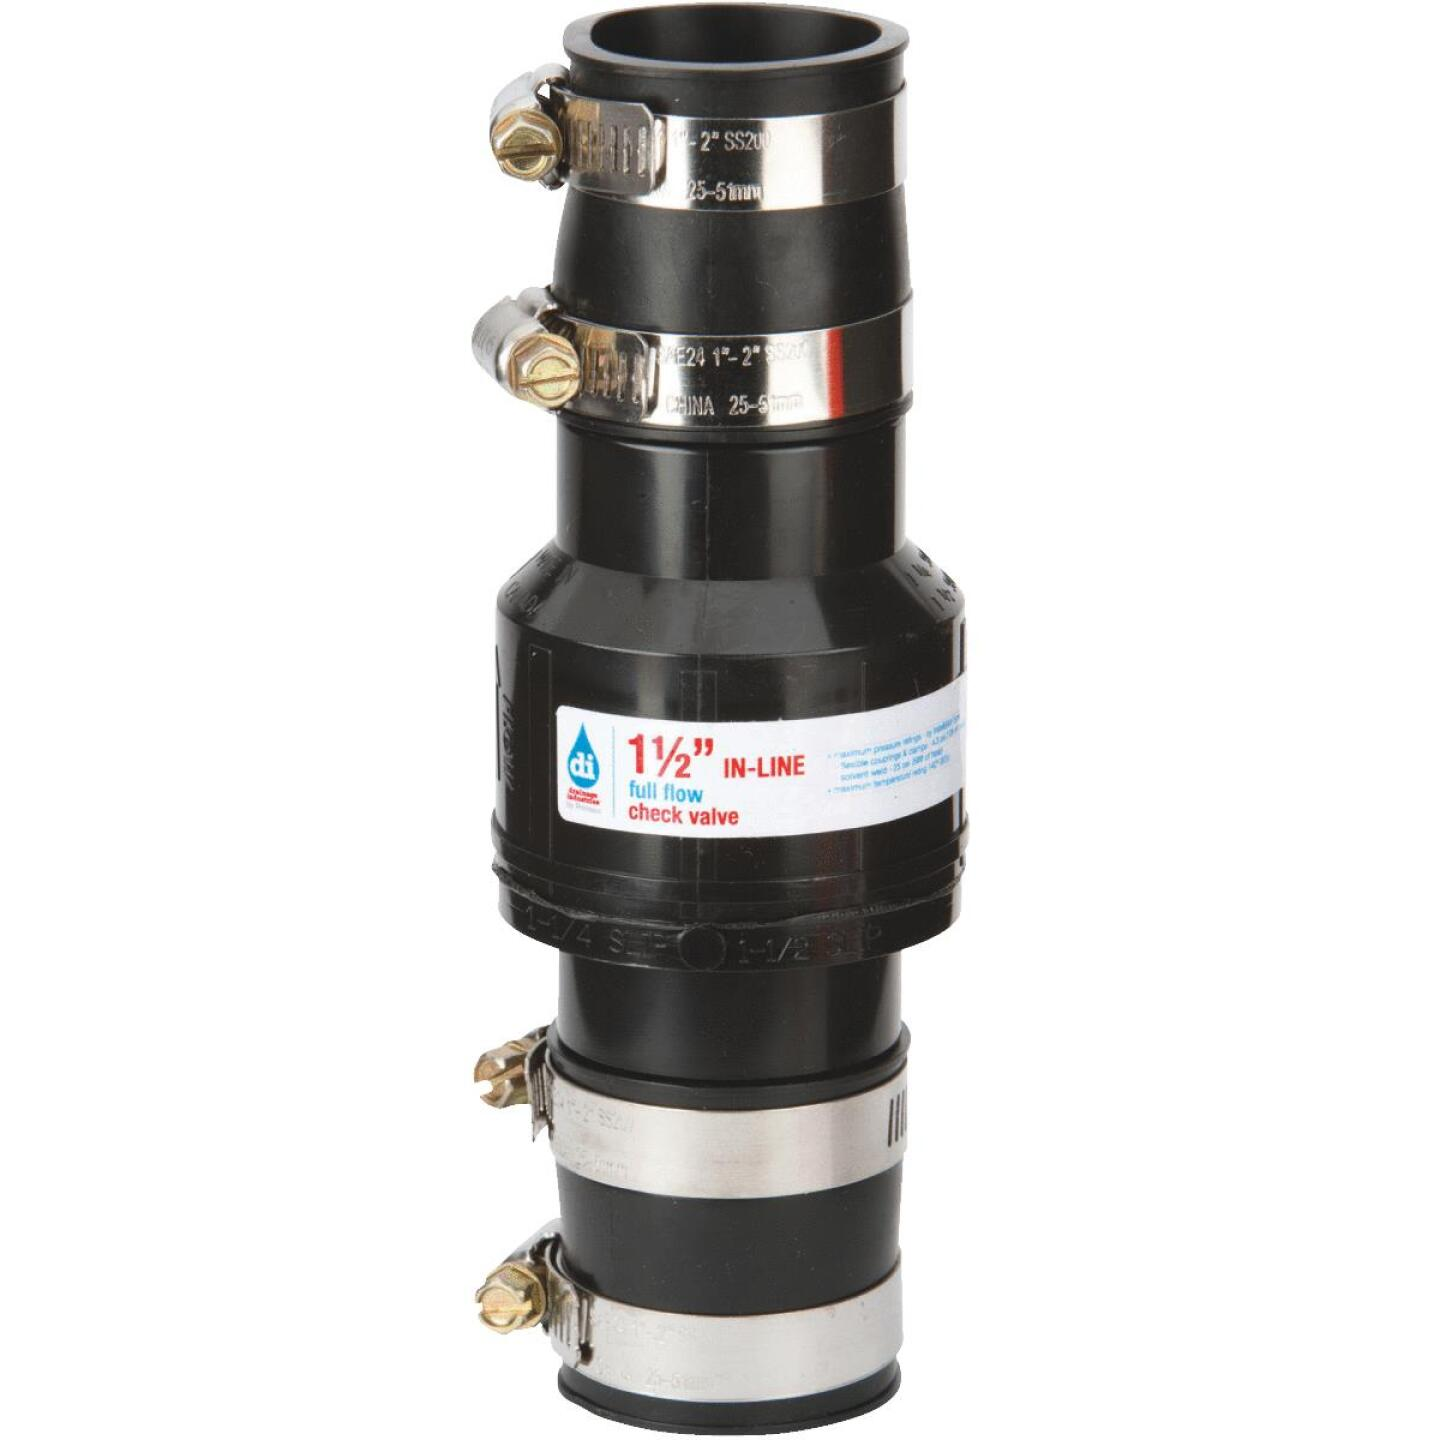 Drainage Industries 1-1/2 In. ABS Thermoplastic In-Line Sump Pump Check Valve Image 1